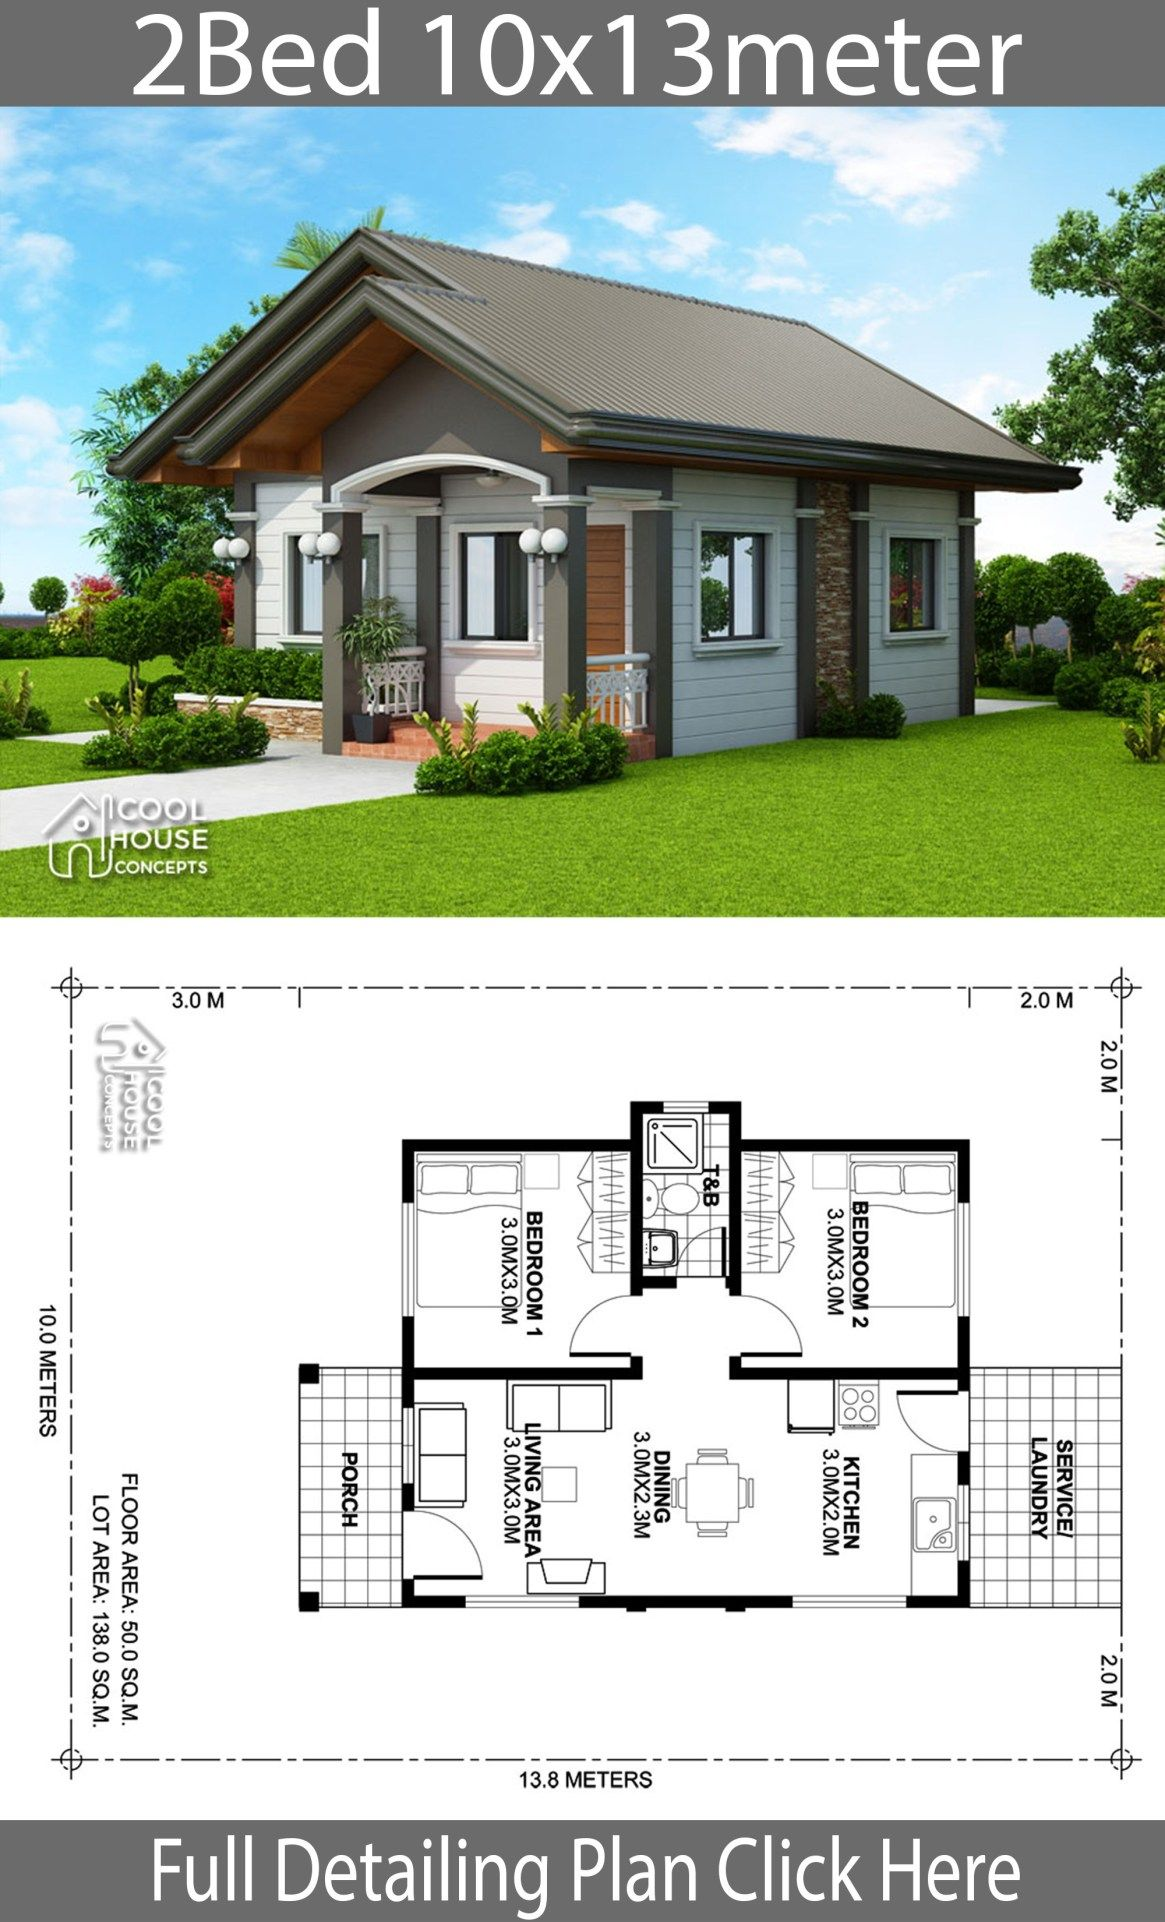 Home design plan 5x5m with 5 bedrooms - Home Design with